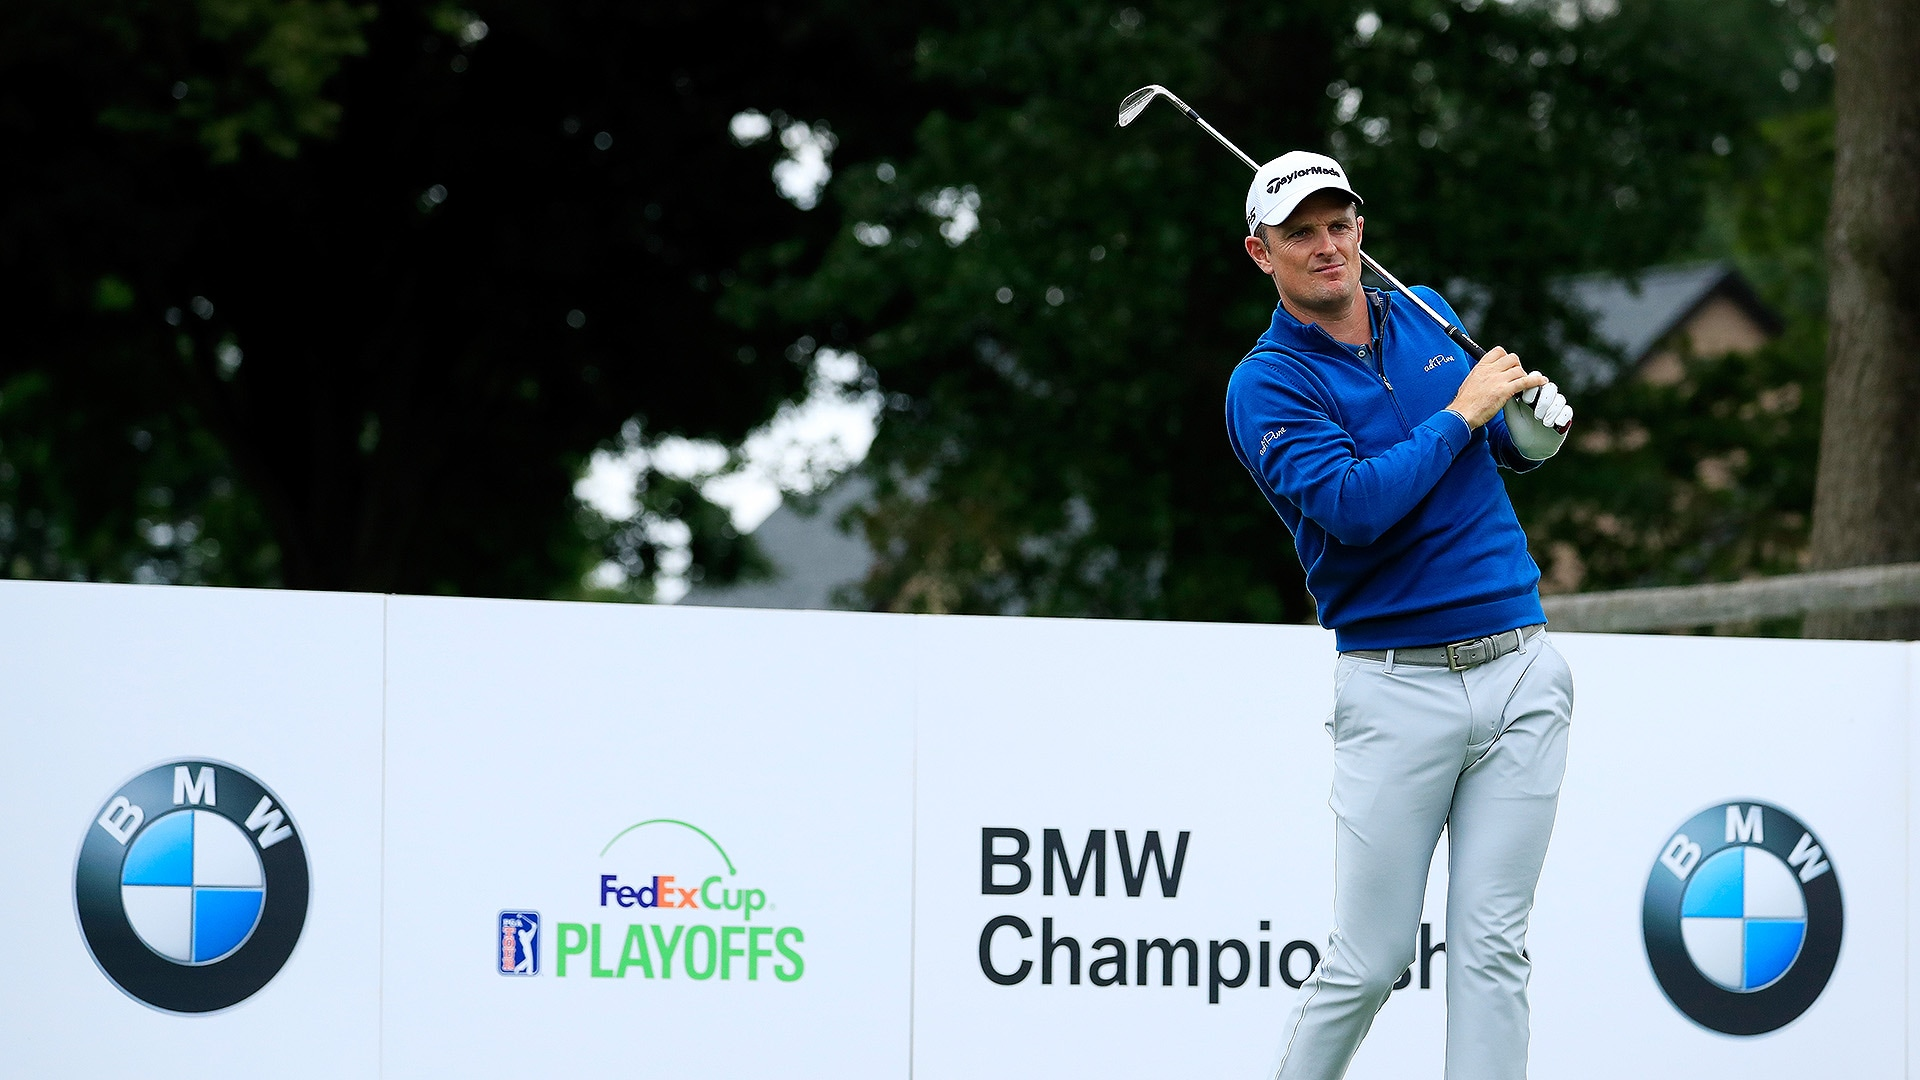 Bmw Championship Tee Times Moved Up Because Of Weather Golf Channel